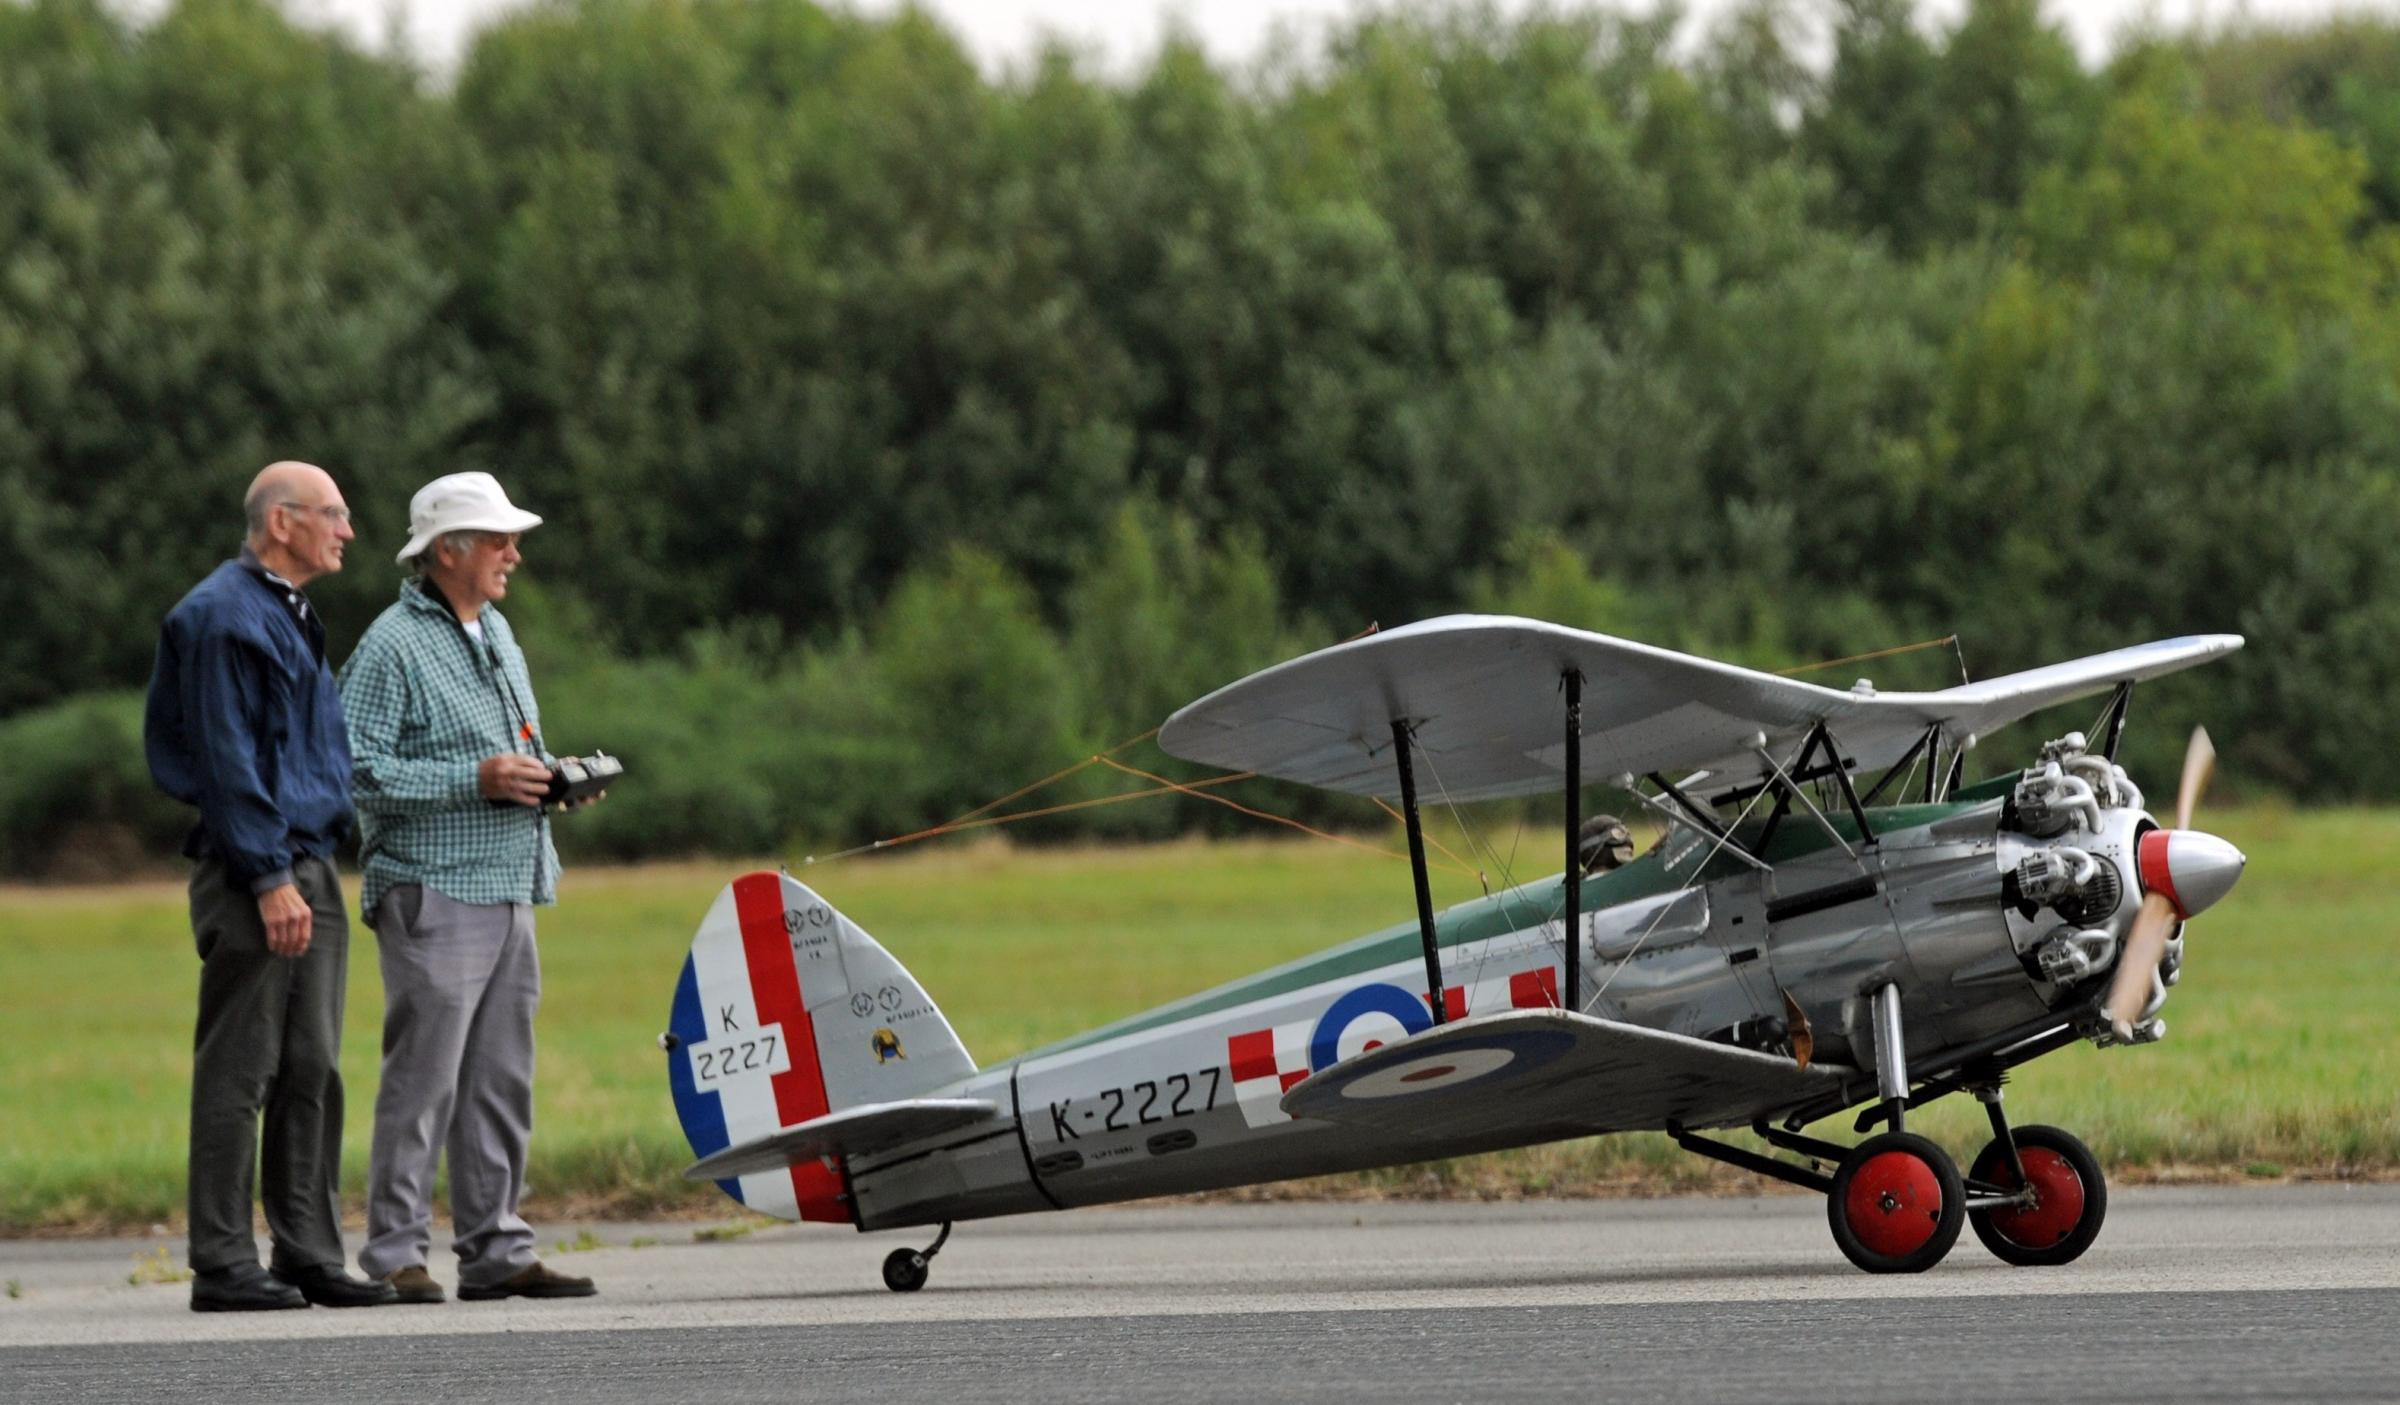 Chocks away at Elvington Model Air Show